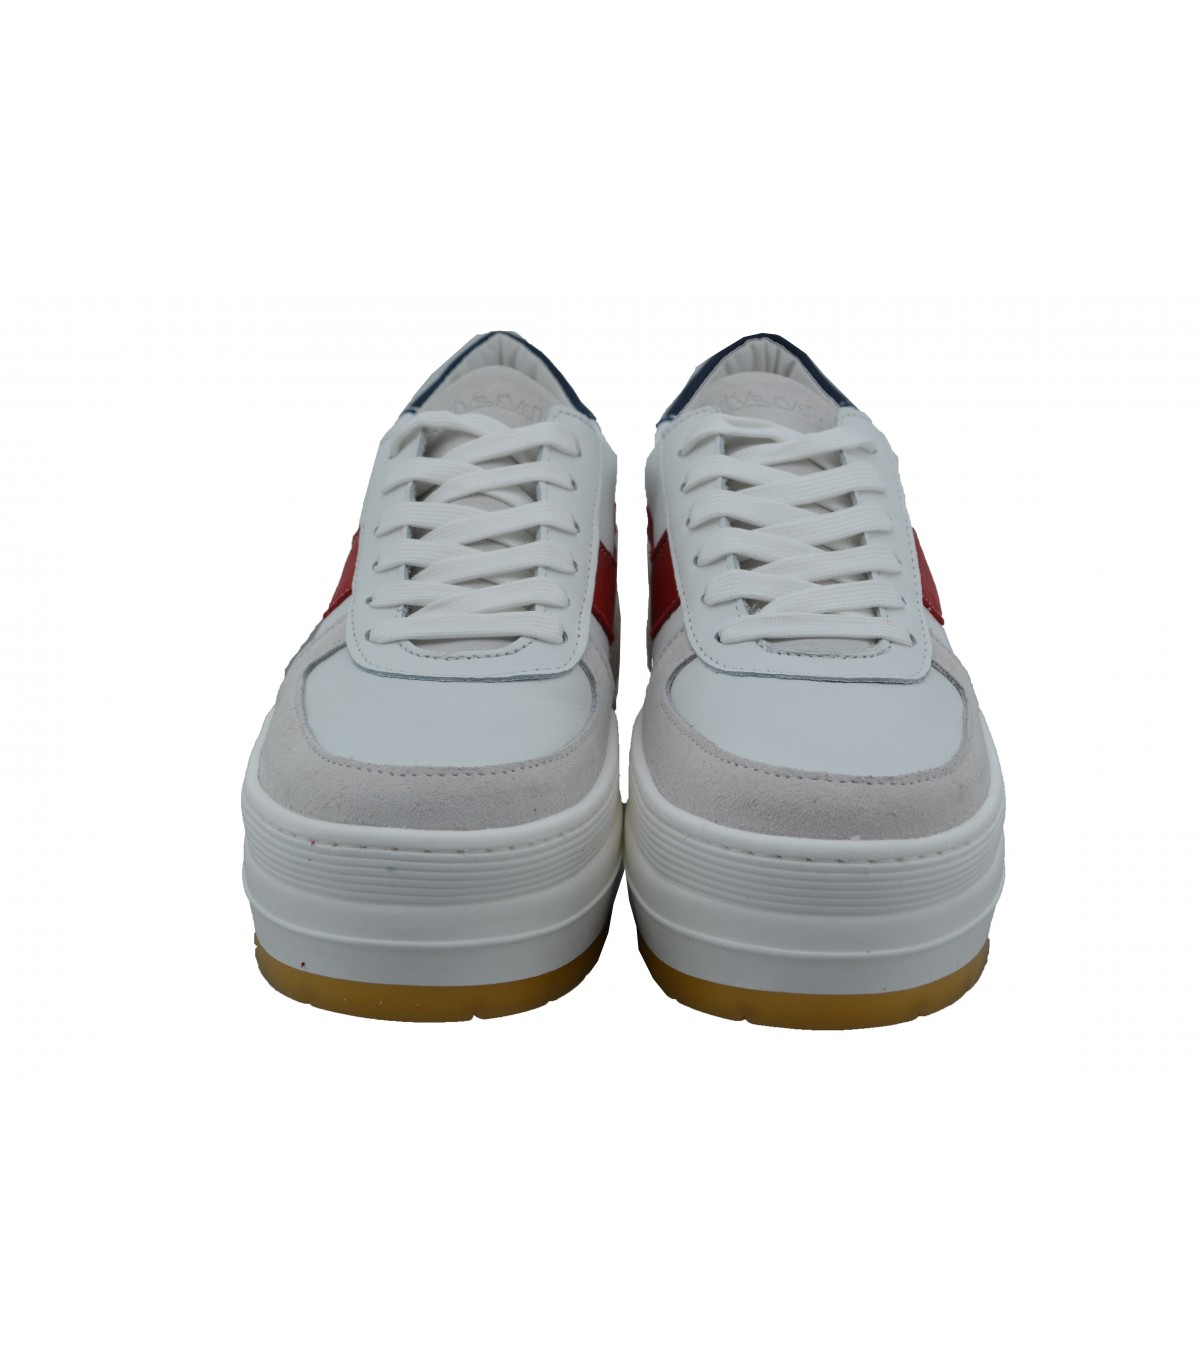 20a5a252559 Sneakers SIXTYSEVEN Amaia